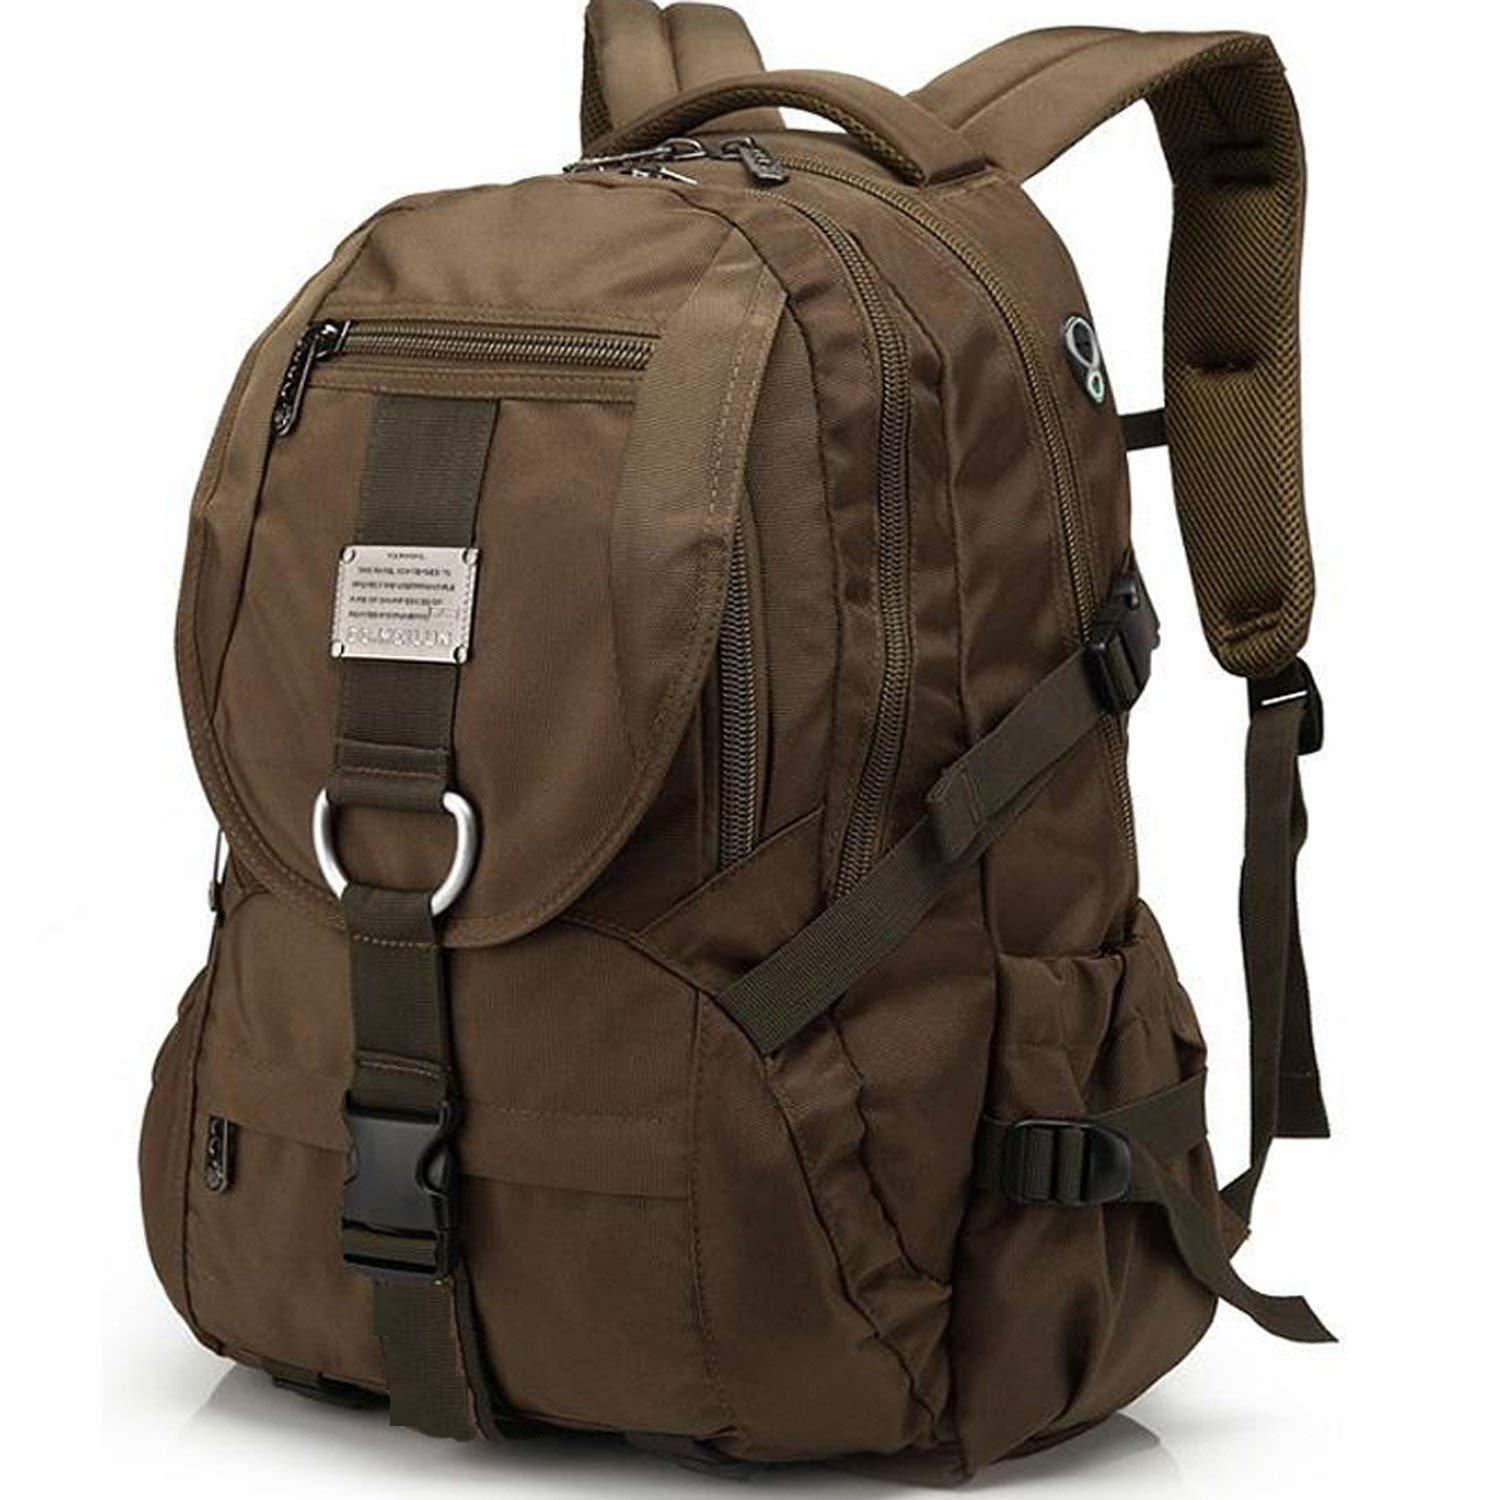 Travel Laptop Backpack, Extra Large College School Backpack for Men/Women with Headphones Hole, Water-Resistant Durable Outdoor Travel Computer Daypack Backpack Fit 17 Inch Laptops Notebook (Brown) by KOLAKO